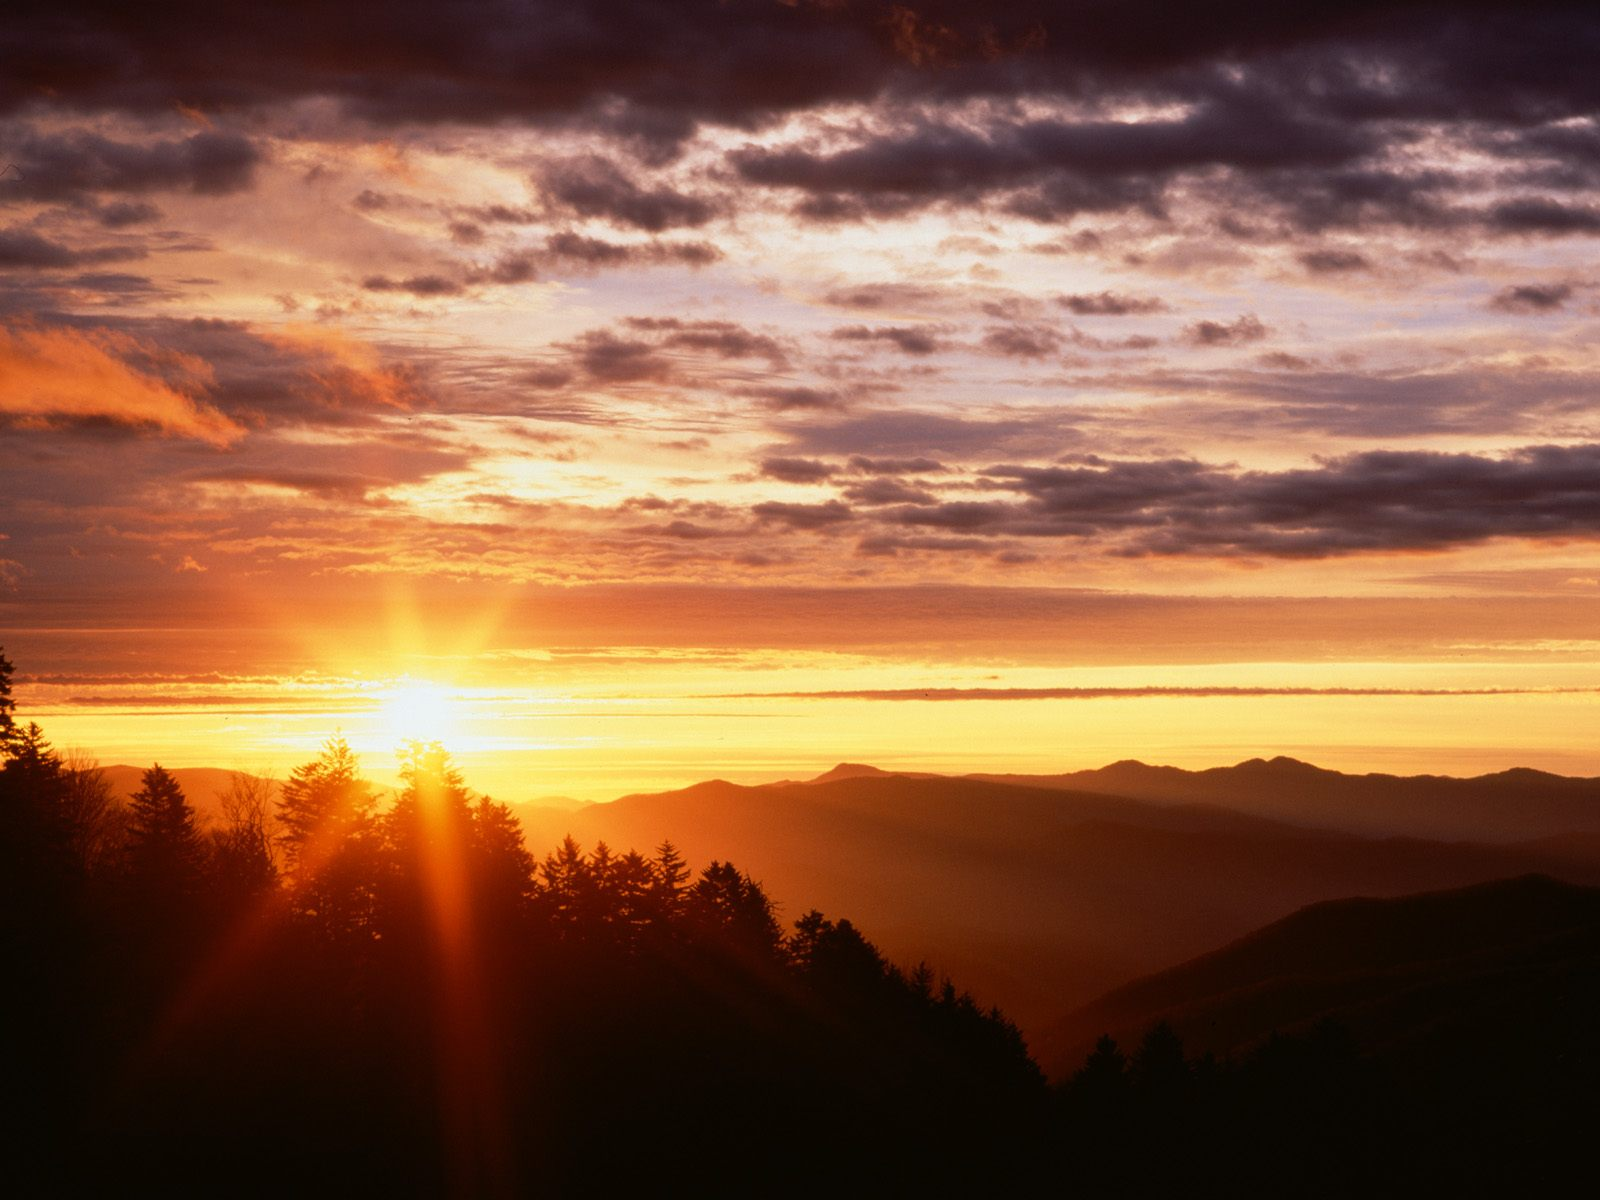 Mountain Sunrise Wallpaper 10061 Hd Wallpapers in Nature   Imagesci 1600x1200